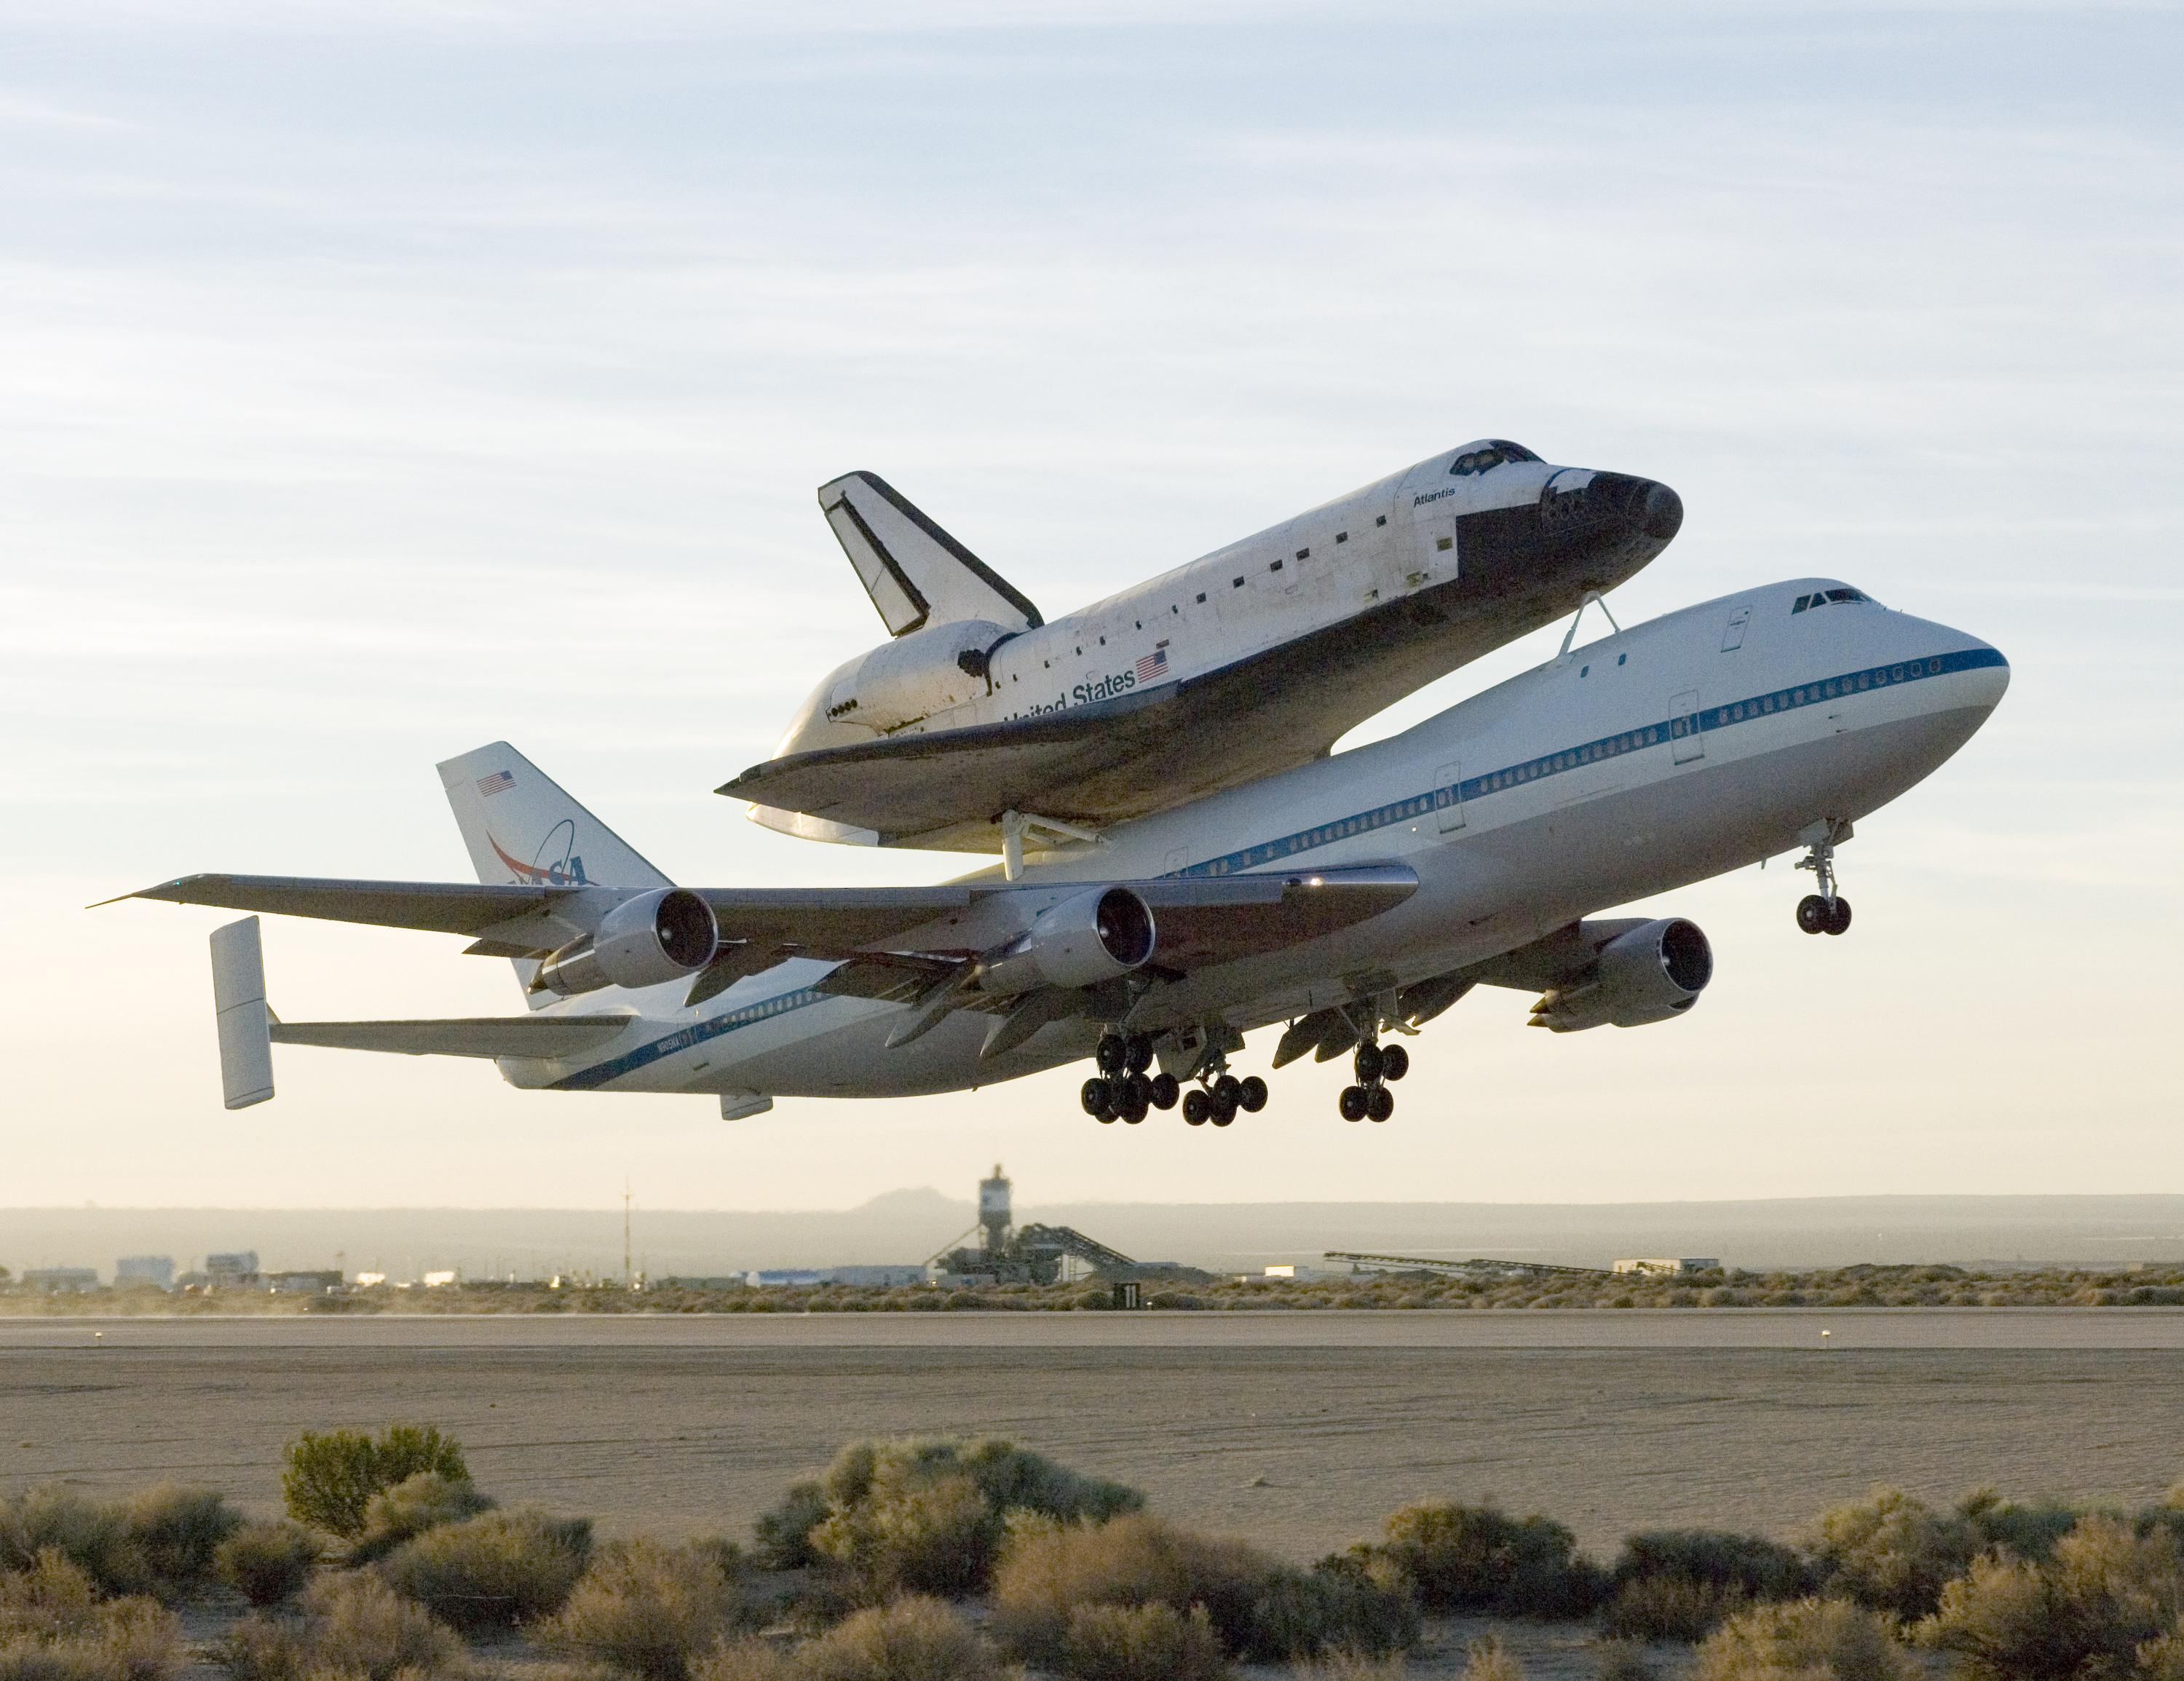 kelly afb space shuttle carrier aircraft - photo #8